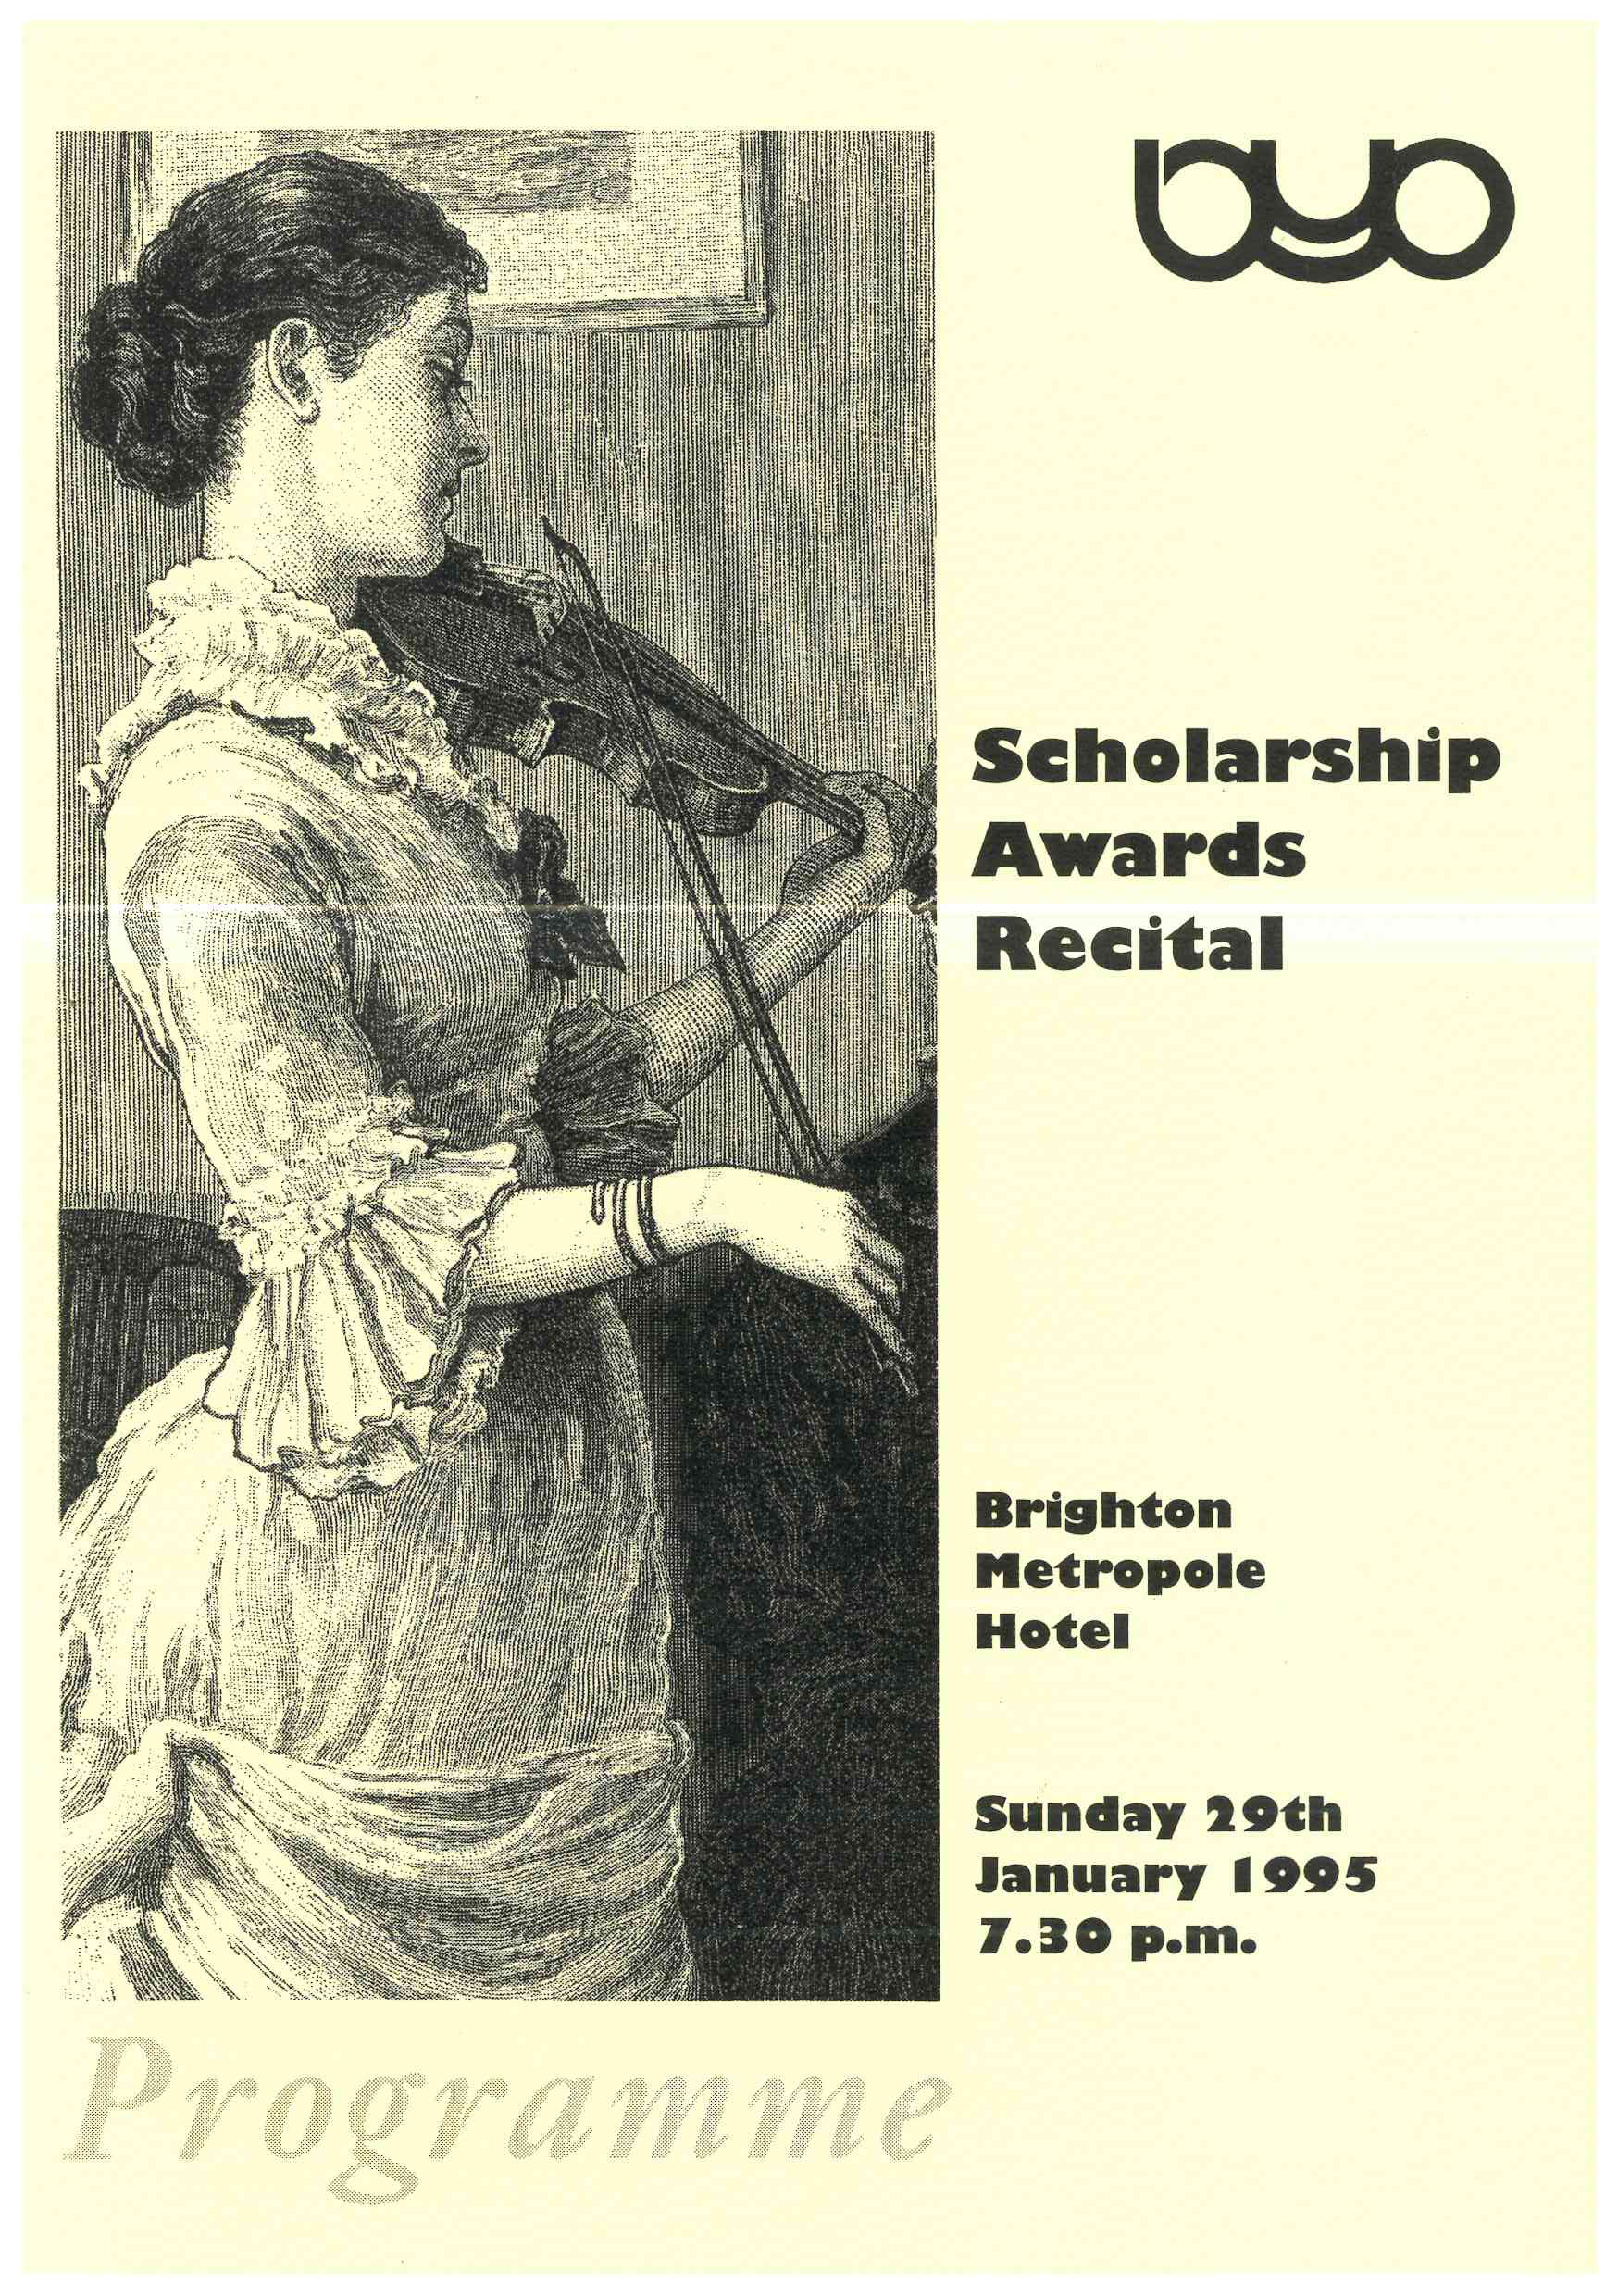 00332-BYO Scholarship Awards, 29th January 1995.jpg